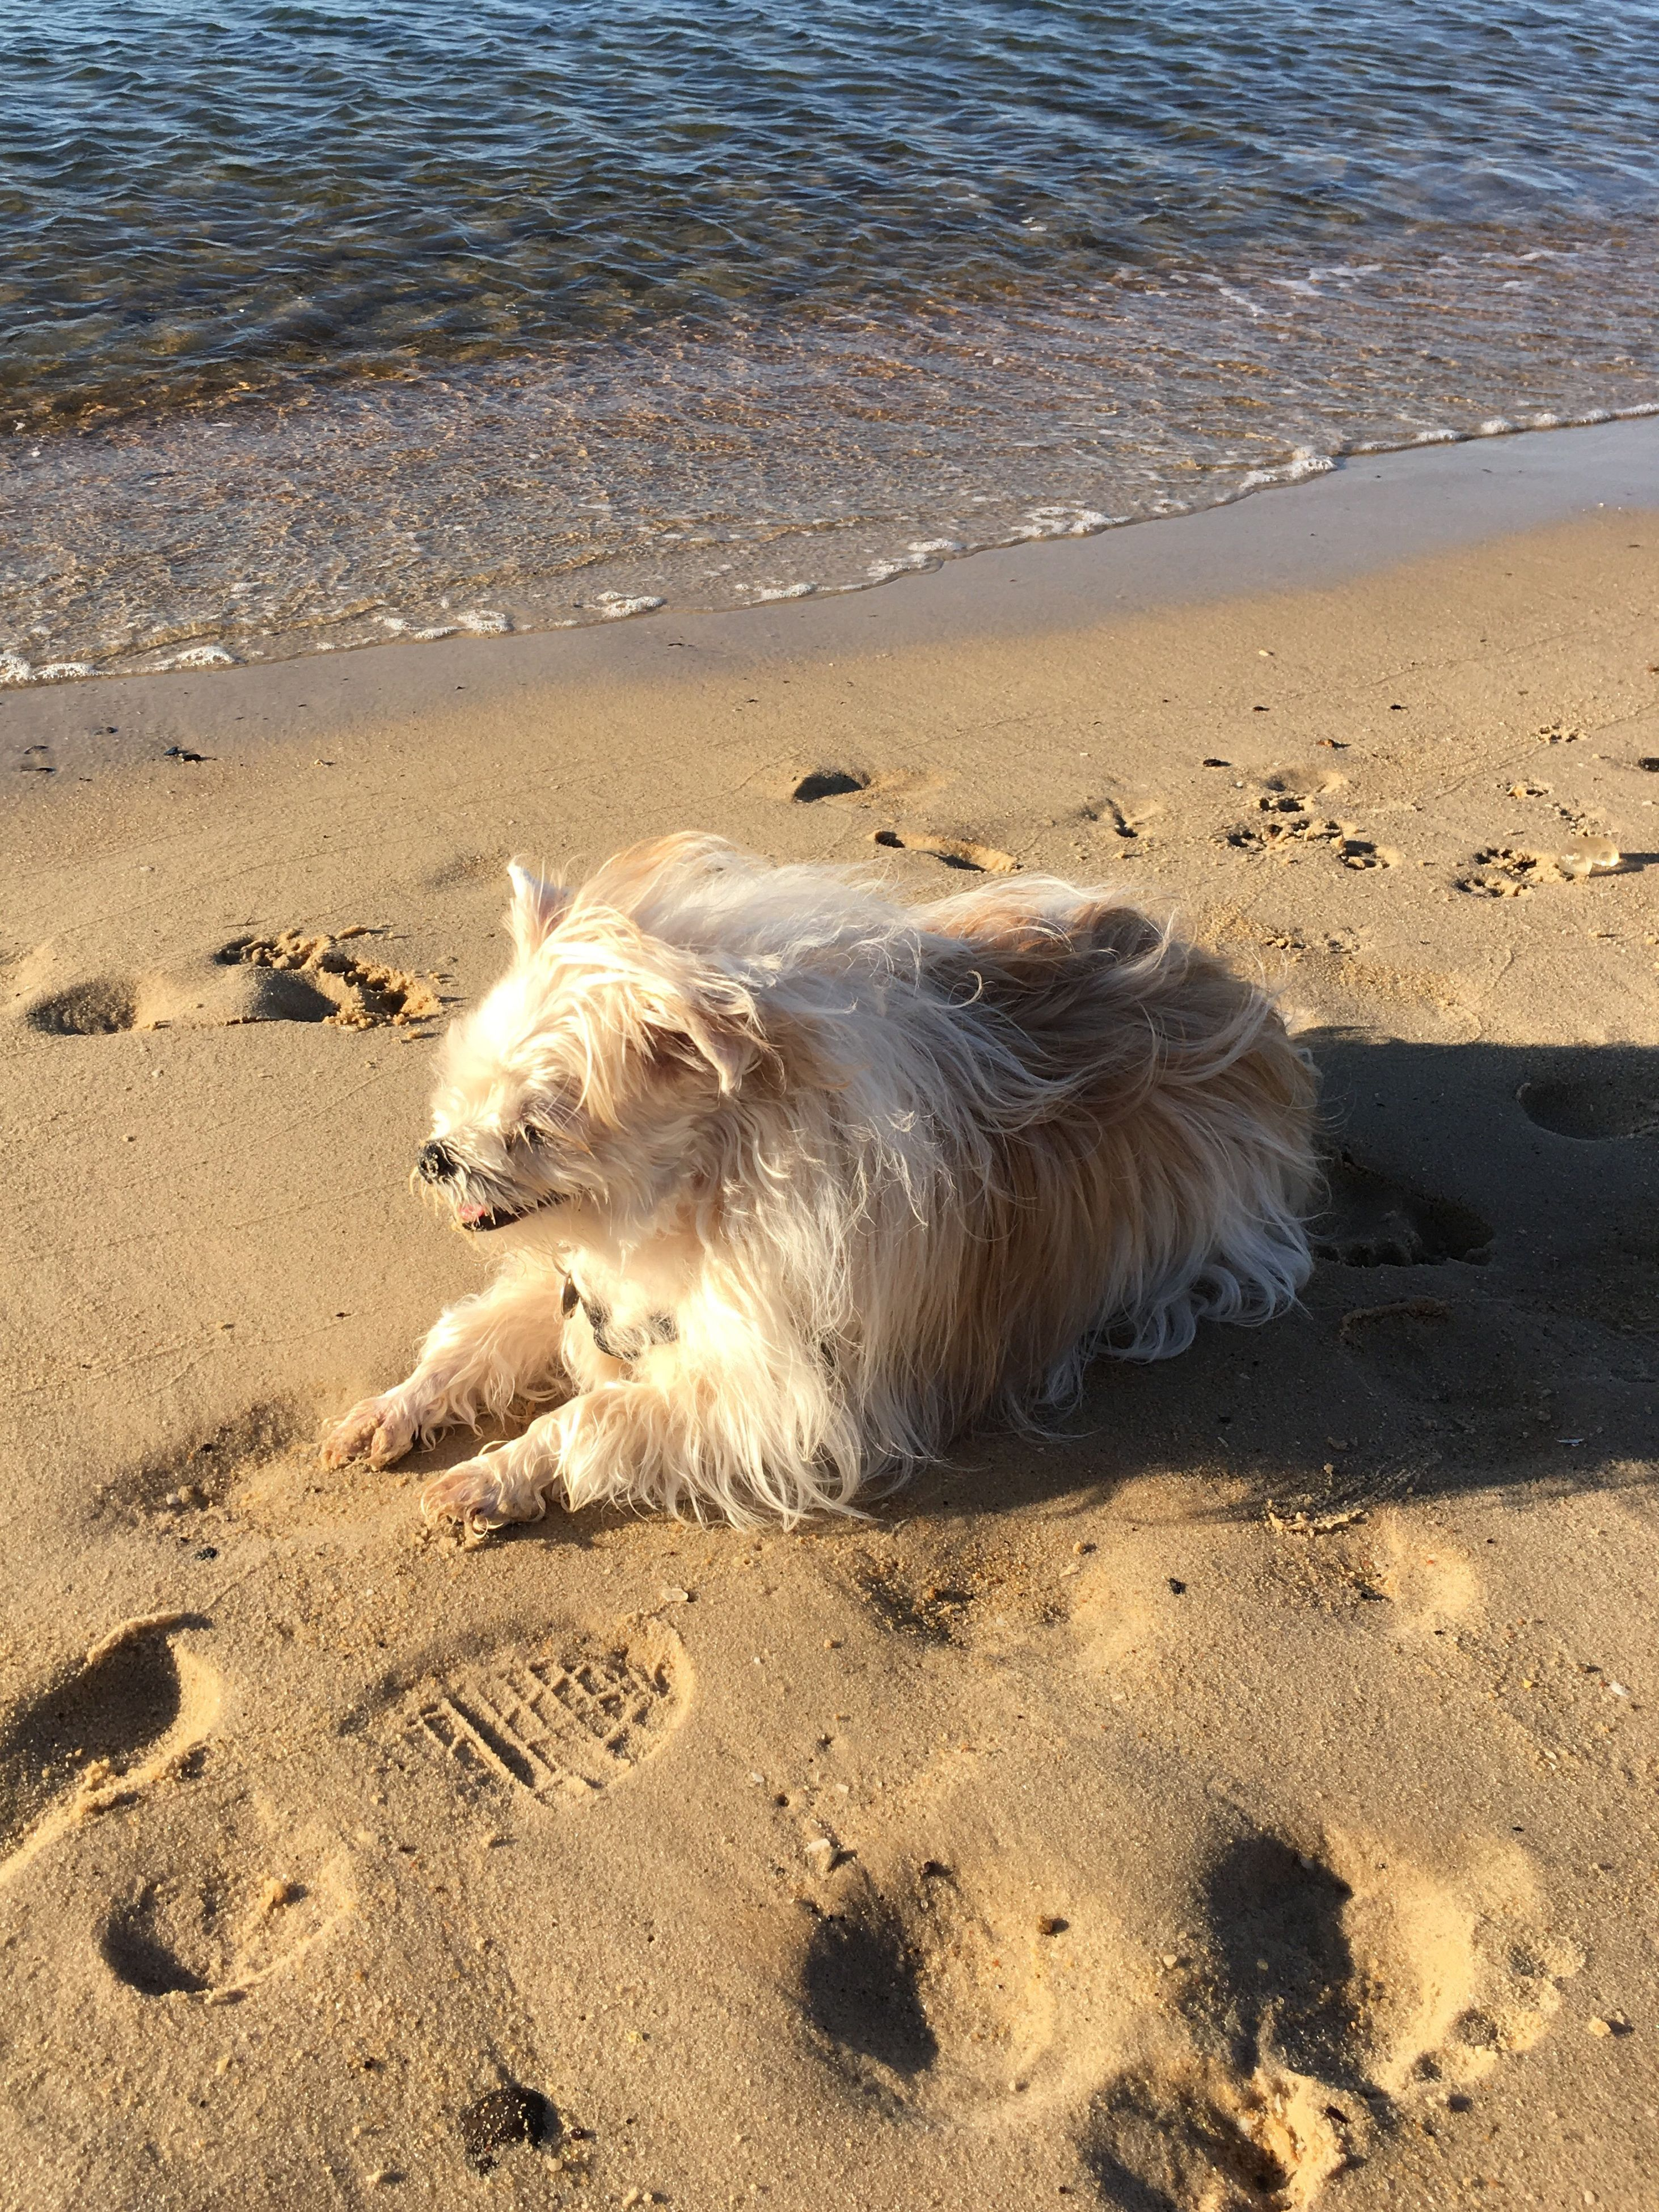 beach, sand, shore, sea, animal themes, water, nature, one animal, animals in the wild, sunlight, wave, tranquility, surf, footprint, sandy, wildlife, day, beauty in nature, horizon over water, outdoors